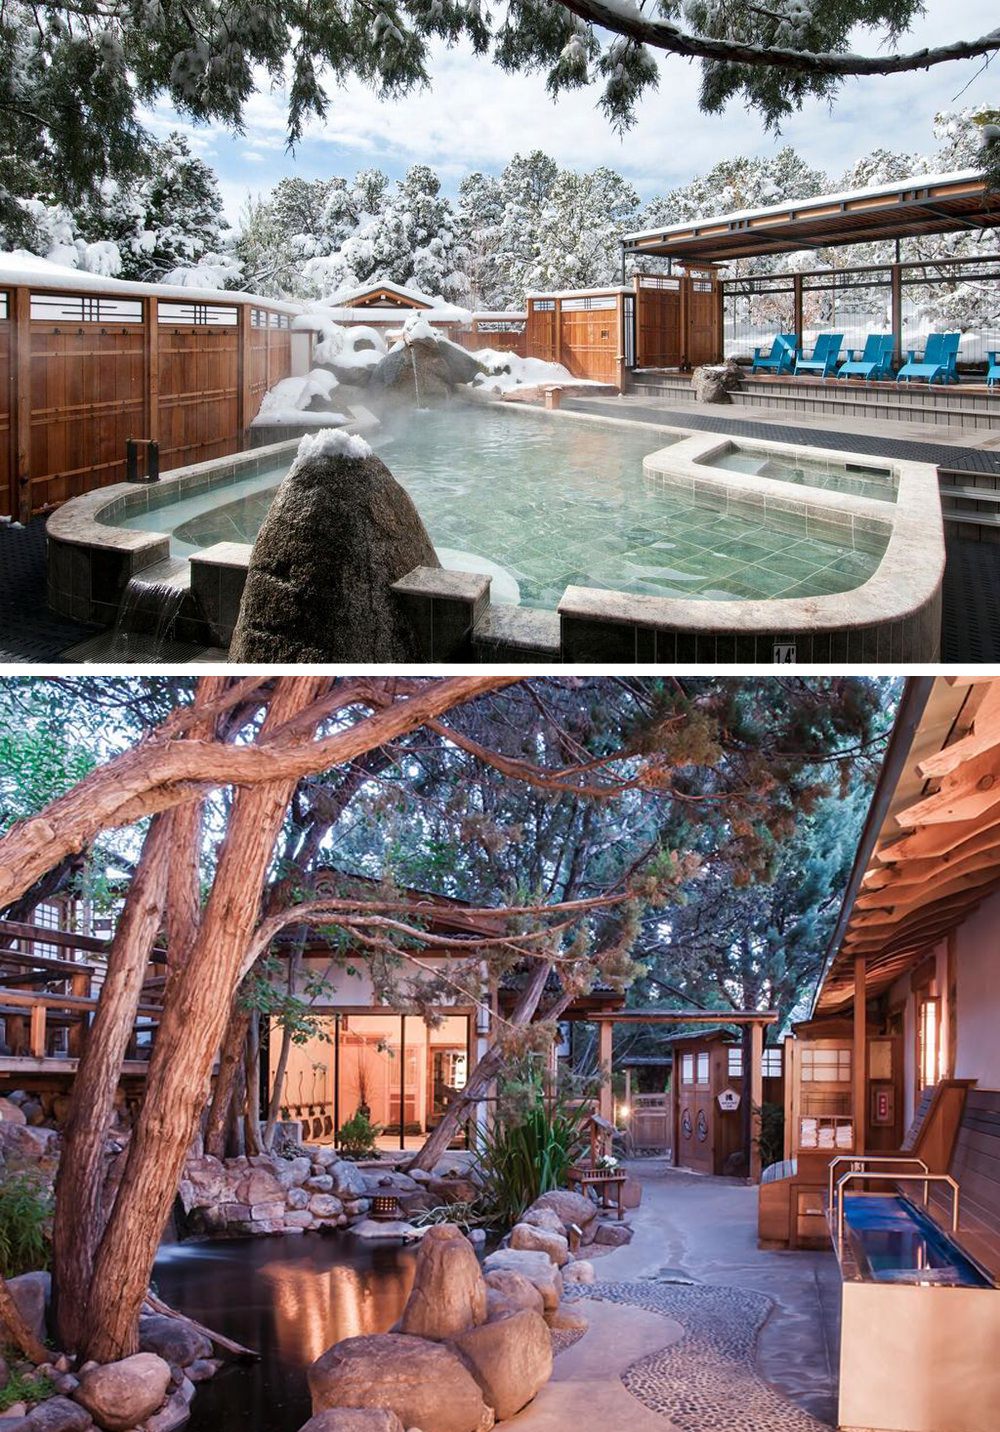 Ten Thousand Waves - Among piñons and junipers are beautiful outdoor hot tubs and spa suites, world-class bodywork & skin care, and the amazing Izanami restaurant.